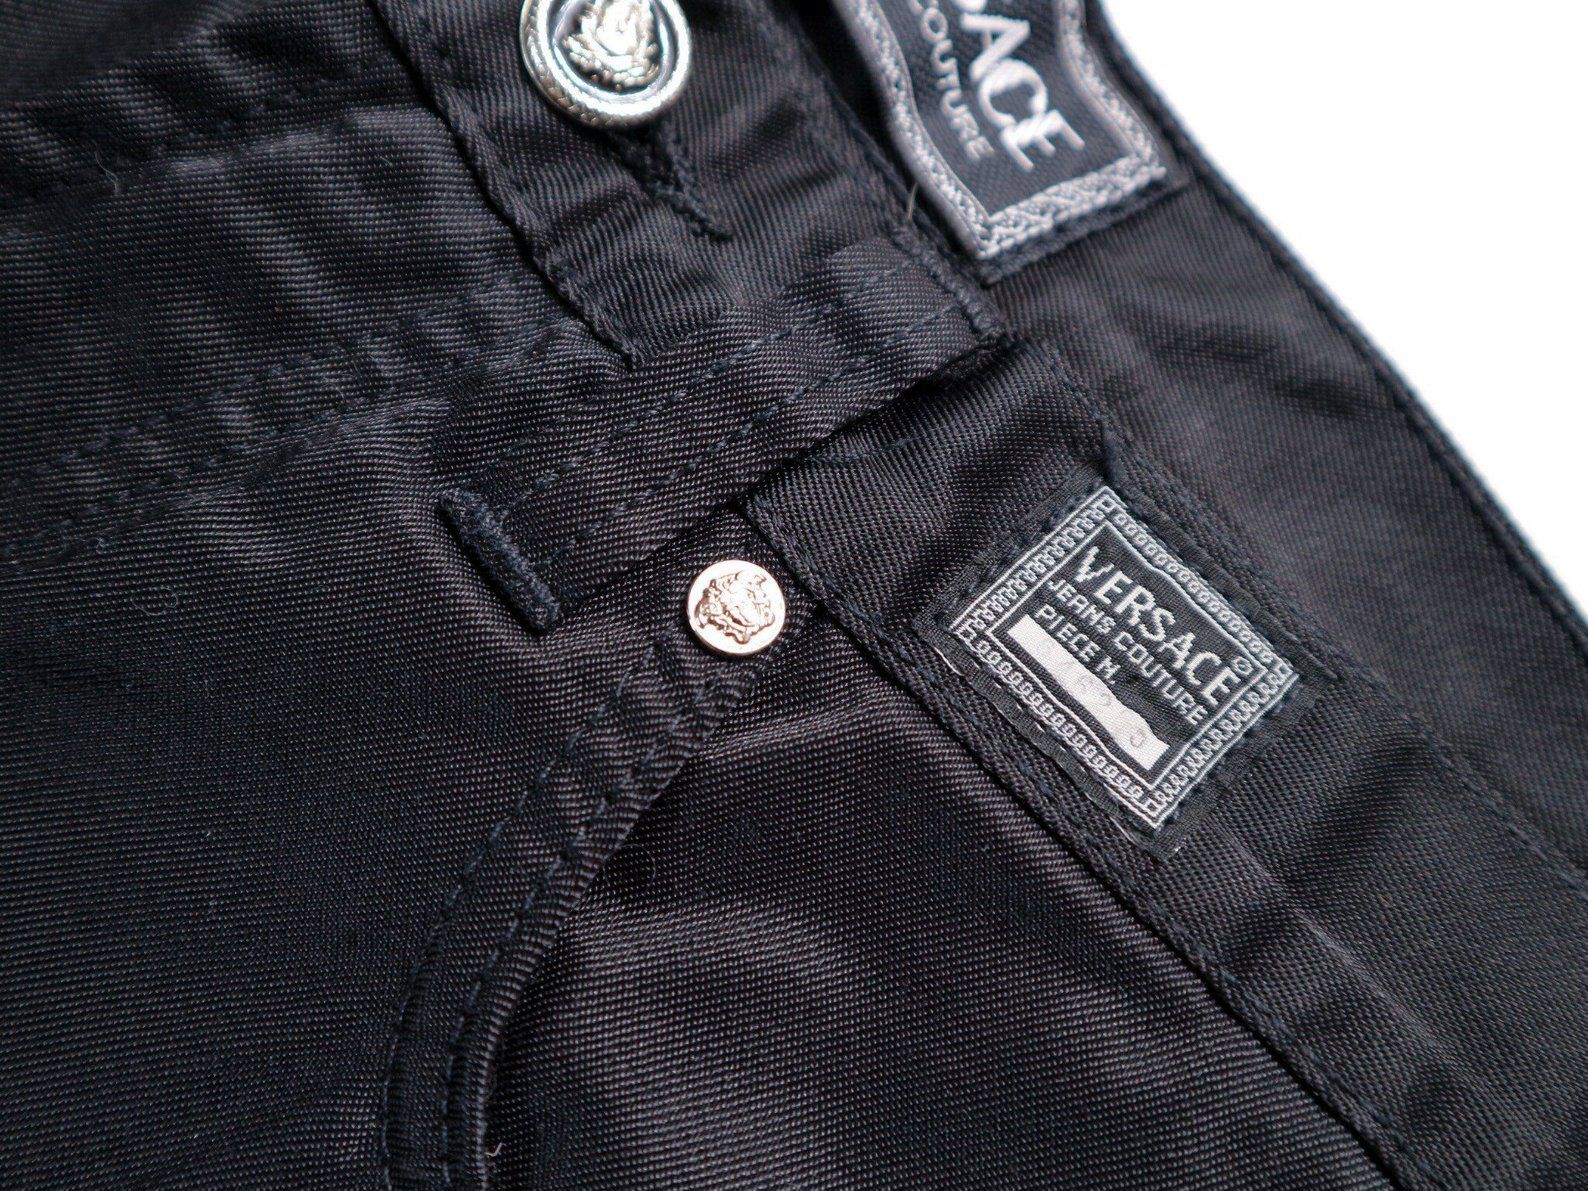 Versace Jeans 90s Versace Jeans Satin Black Jeans High Etsy Versace Jeans 20 Years Old